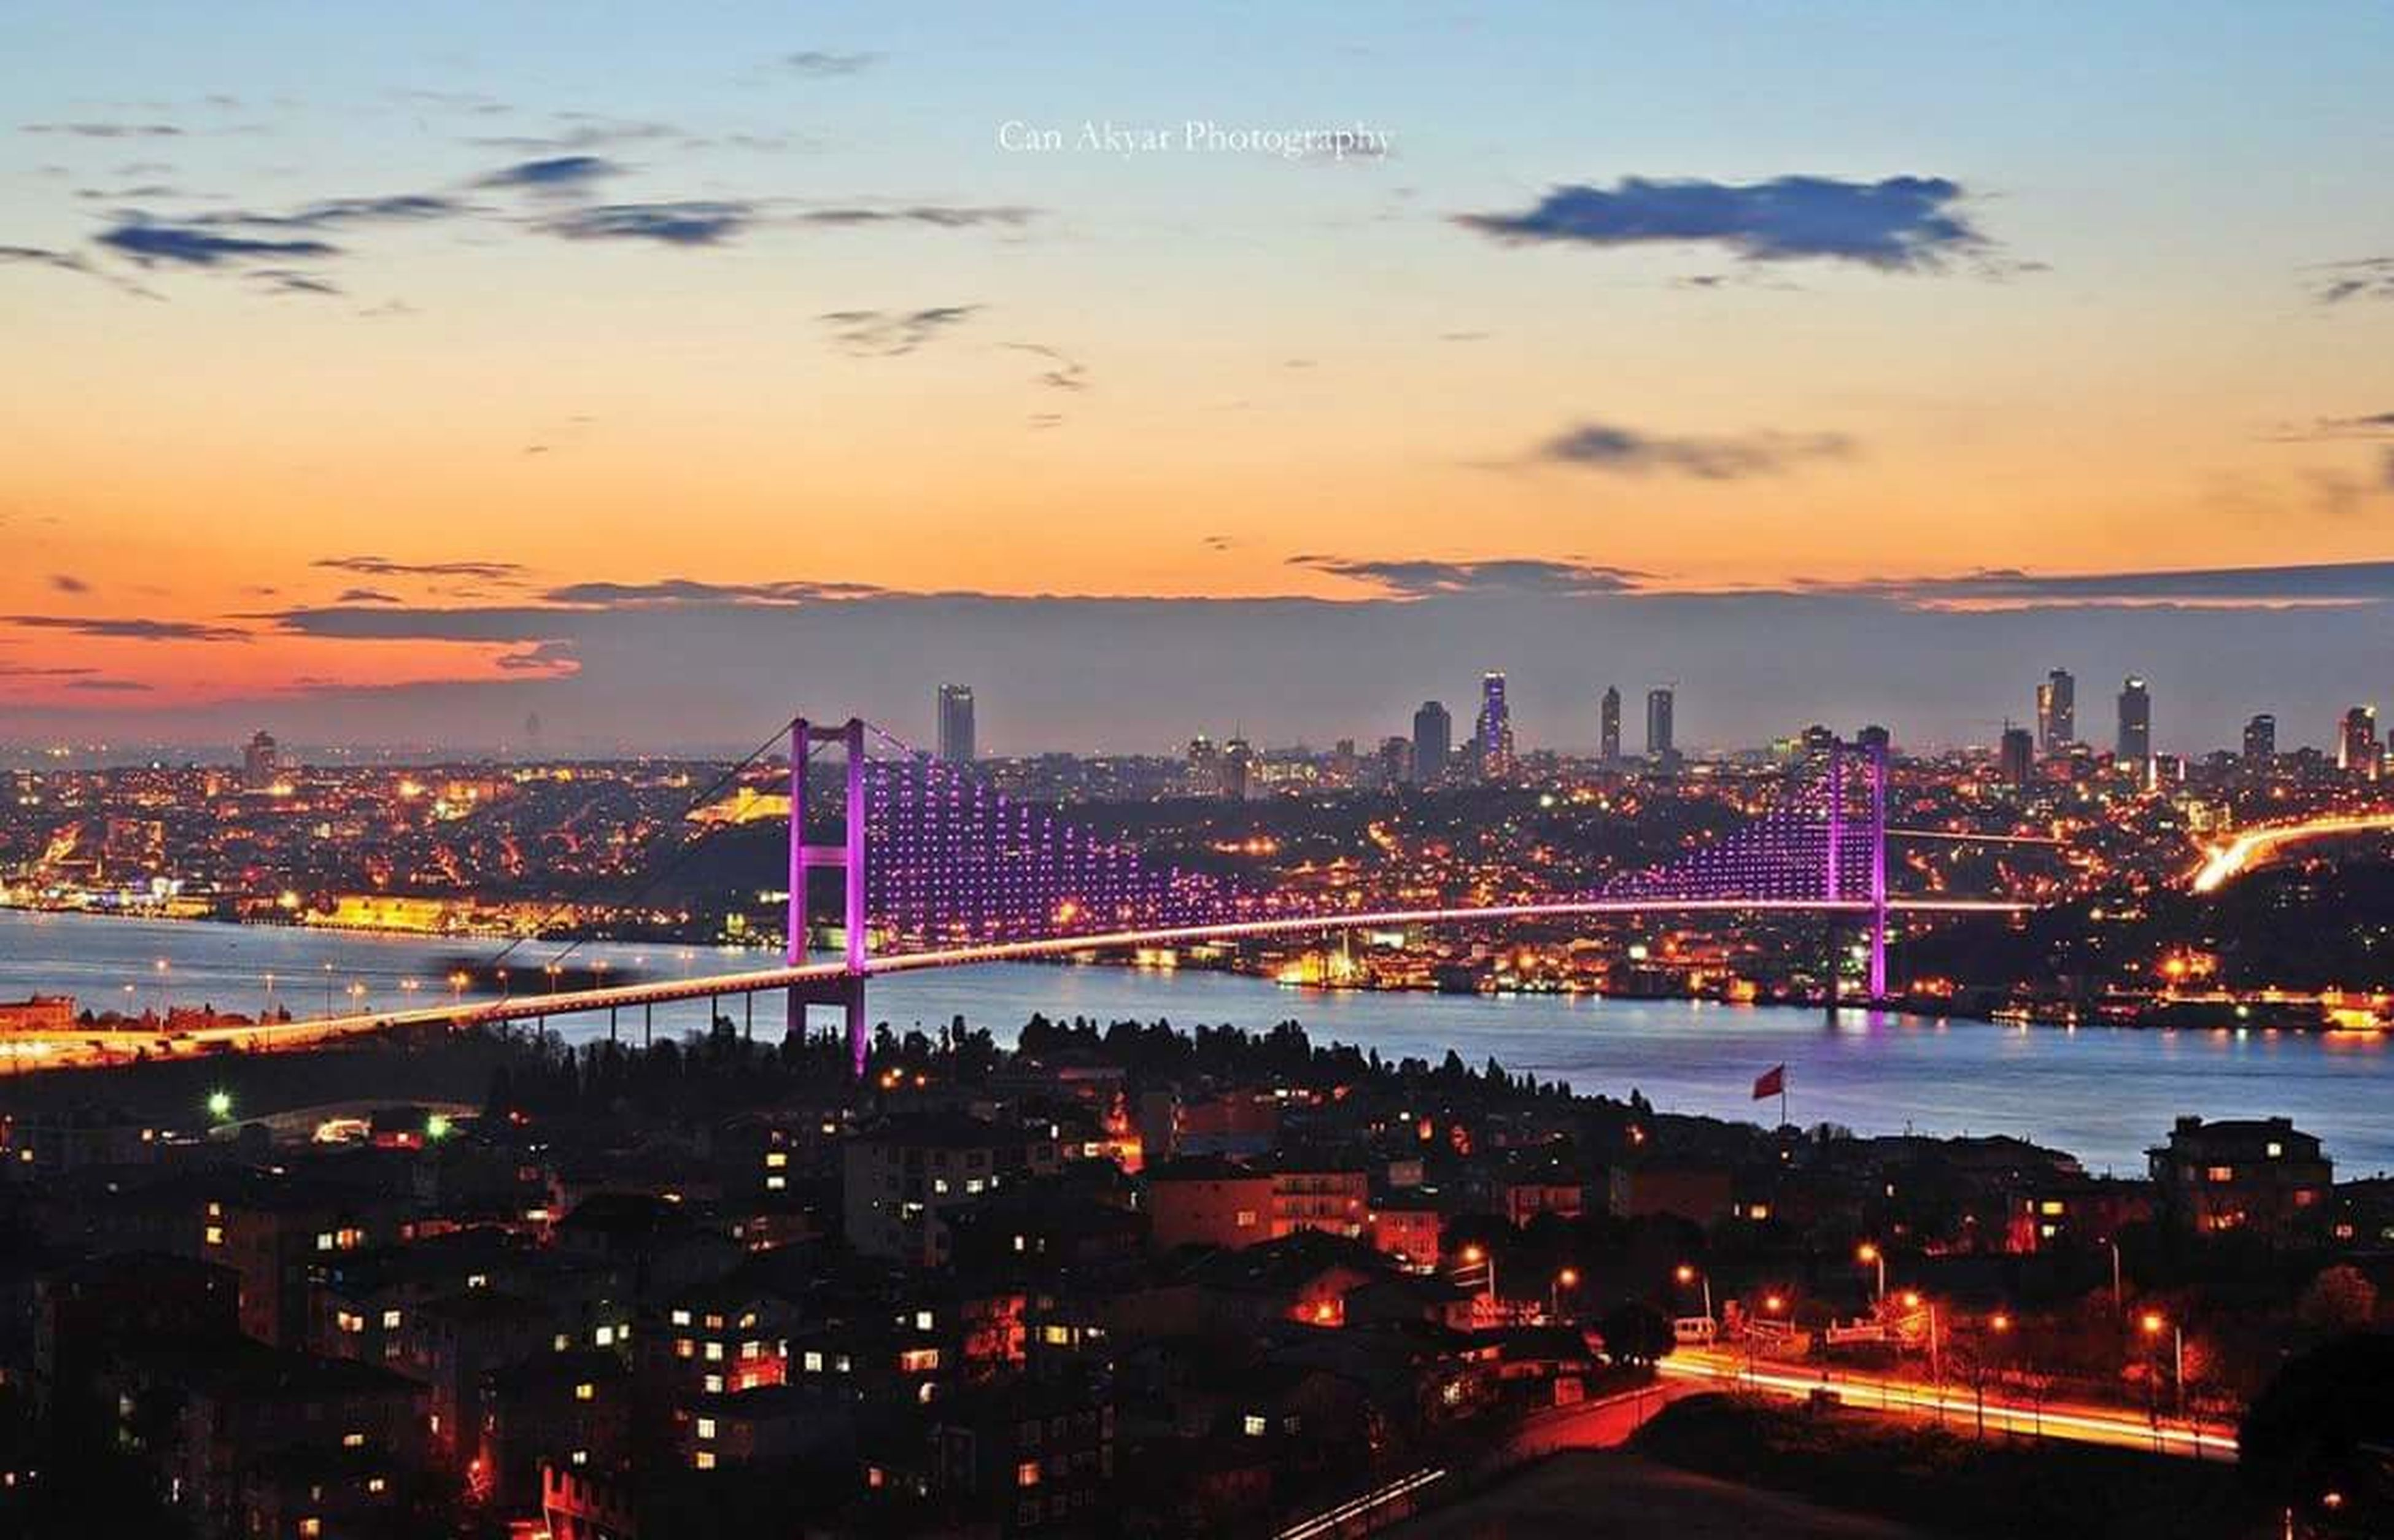 architecture, city, built structure, cityscape, illuminated, building exterior, bridge - man made structure, connection, sky, capital cities, river, high angle view, travel destinations, night, crowded, city life, skyscraper, sunset, famous place, tower